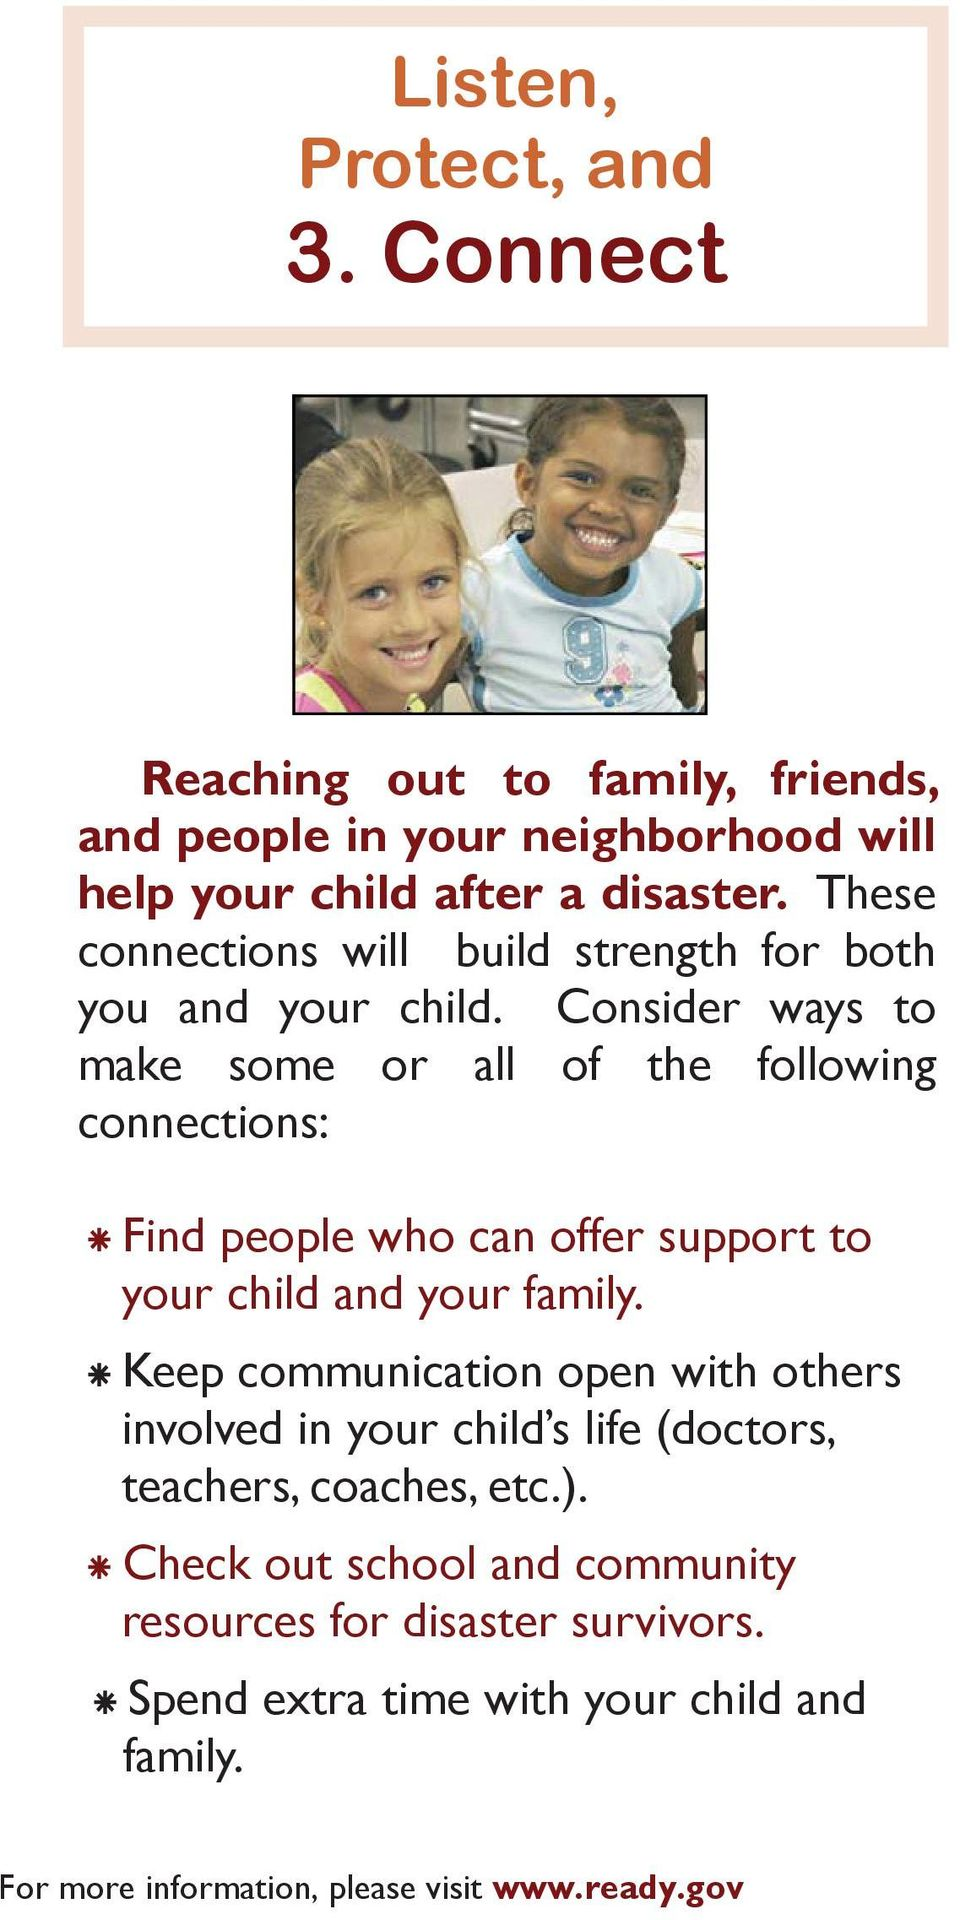 These connections will build strength for both you and your child.